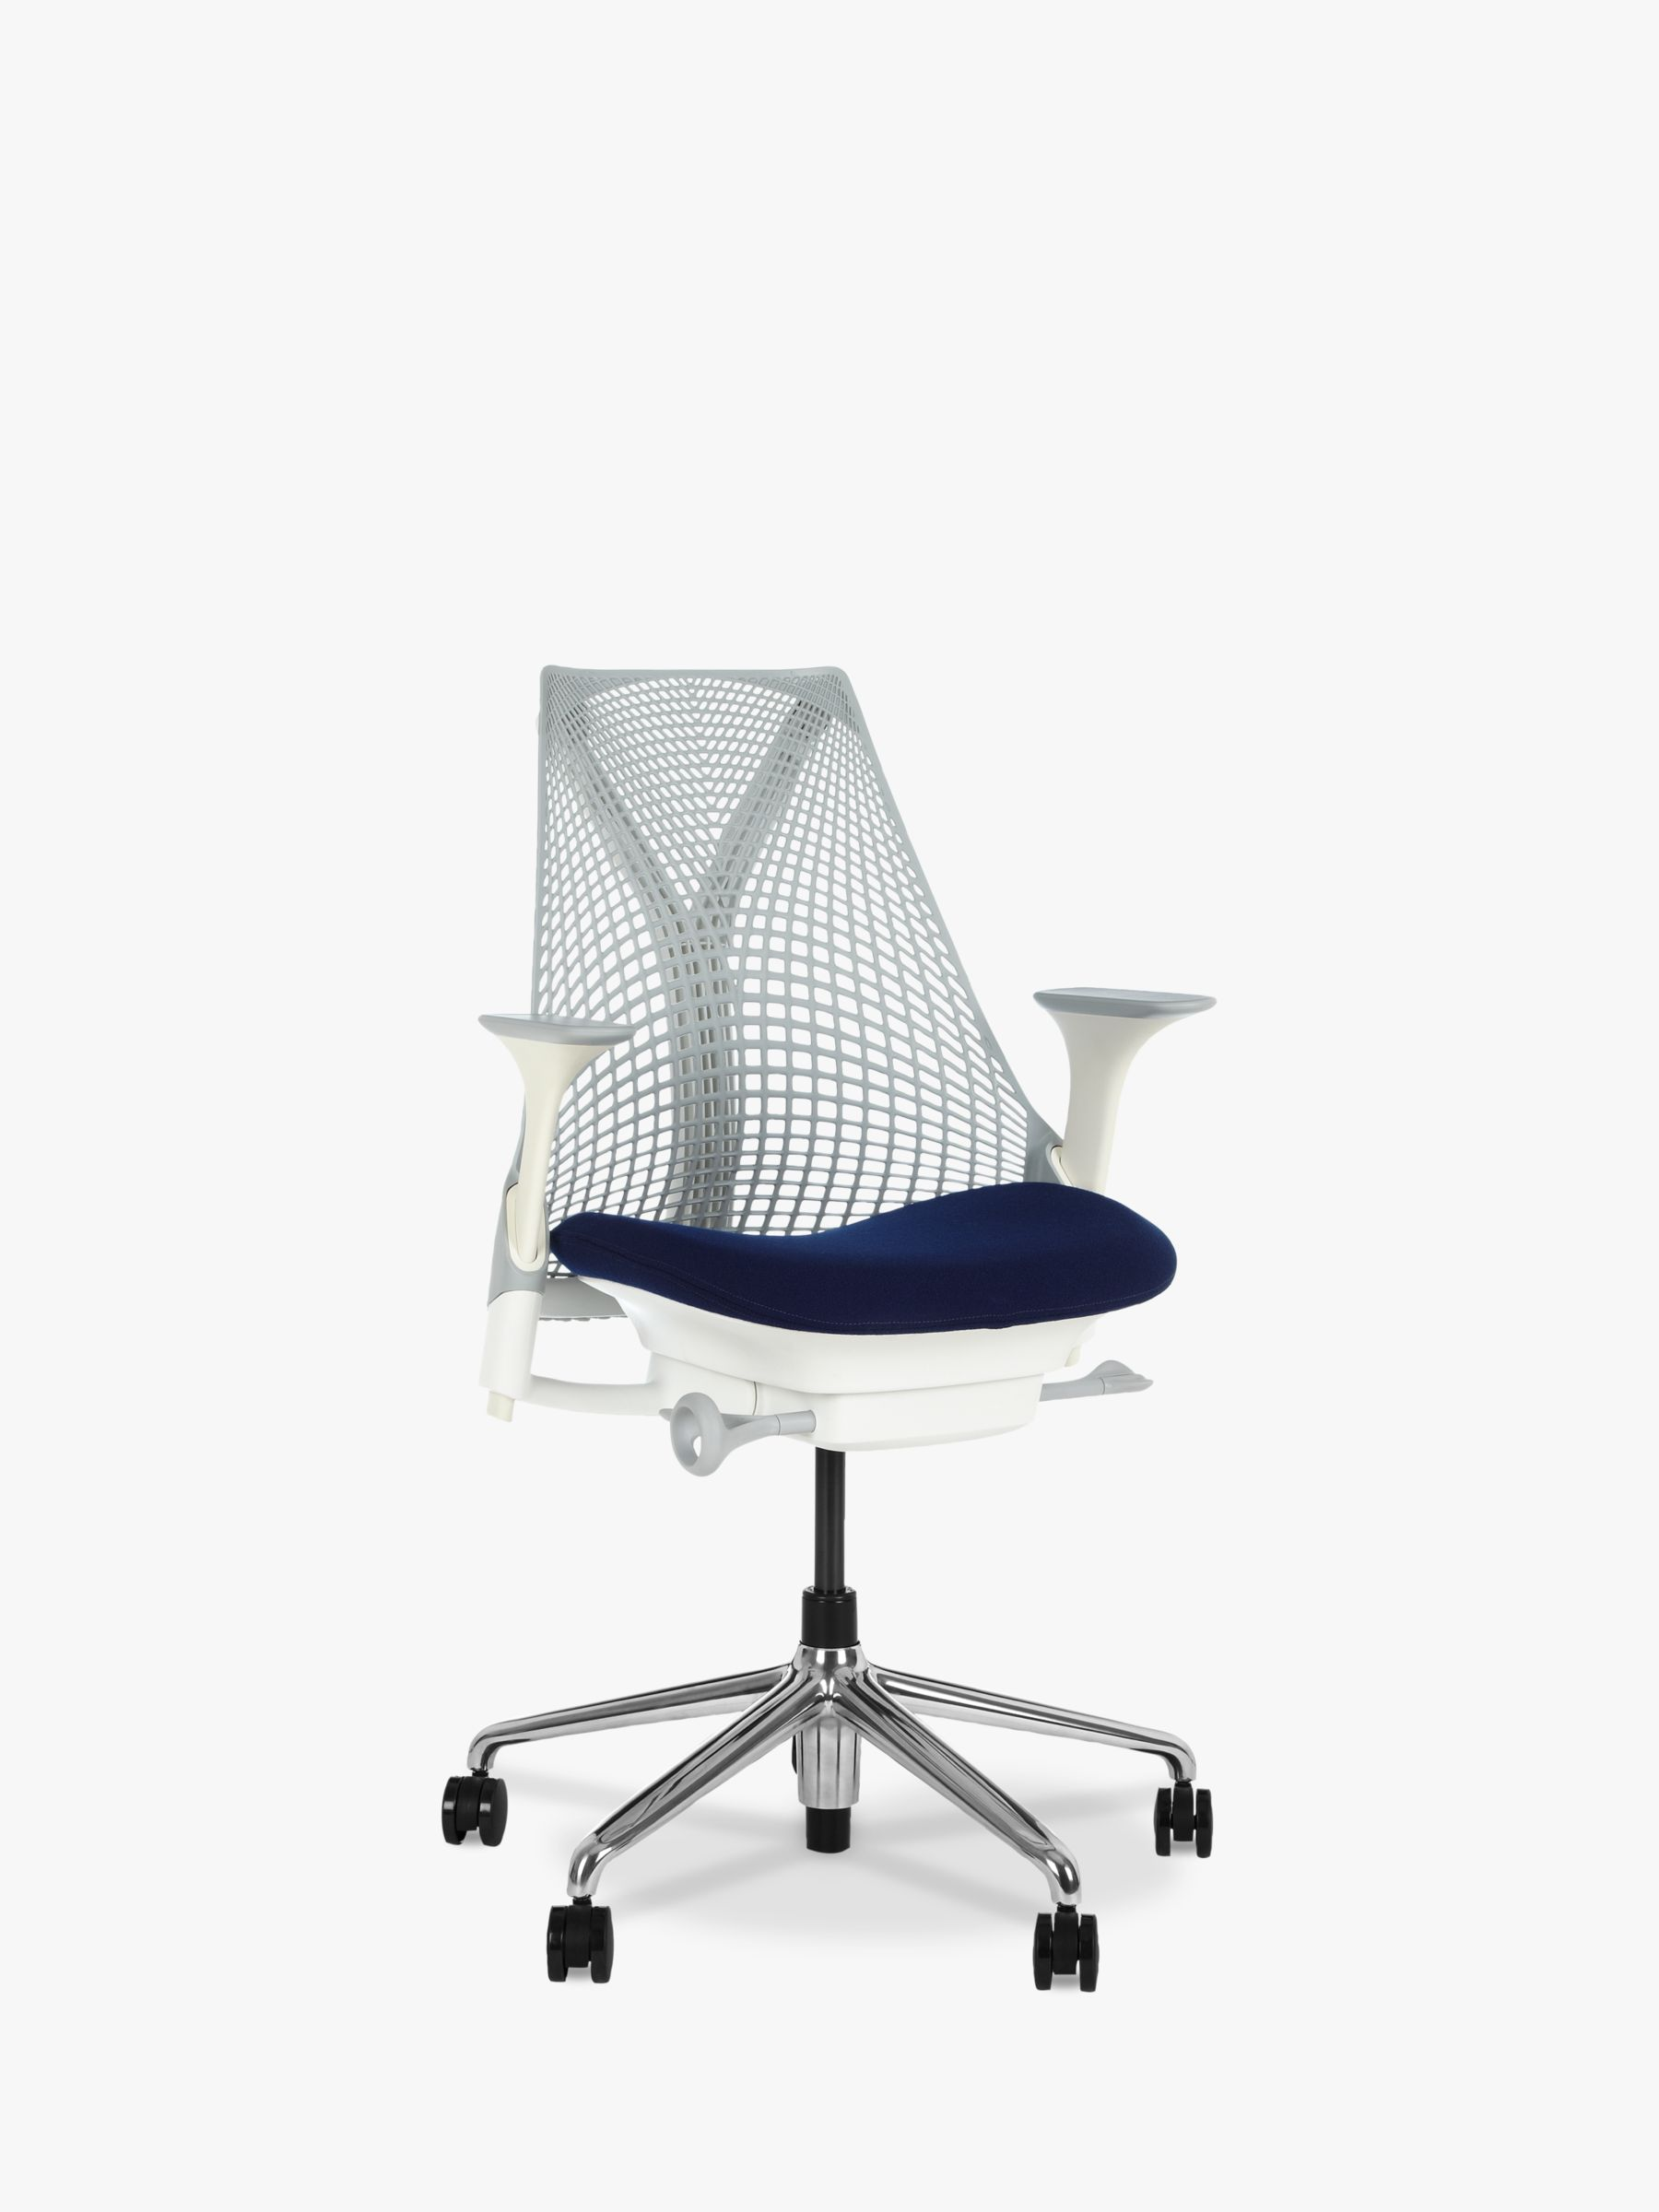 Herman Miller Sayl Office Chairs Vico